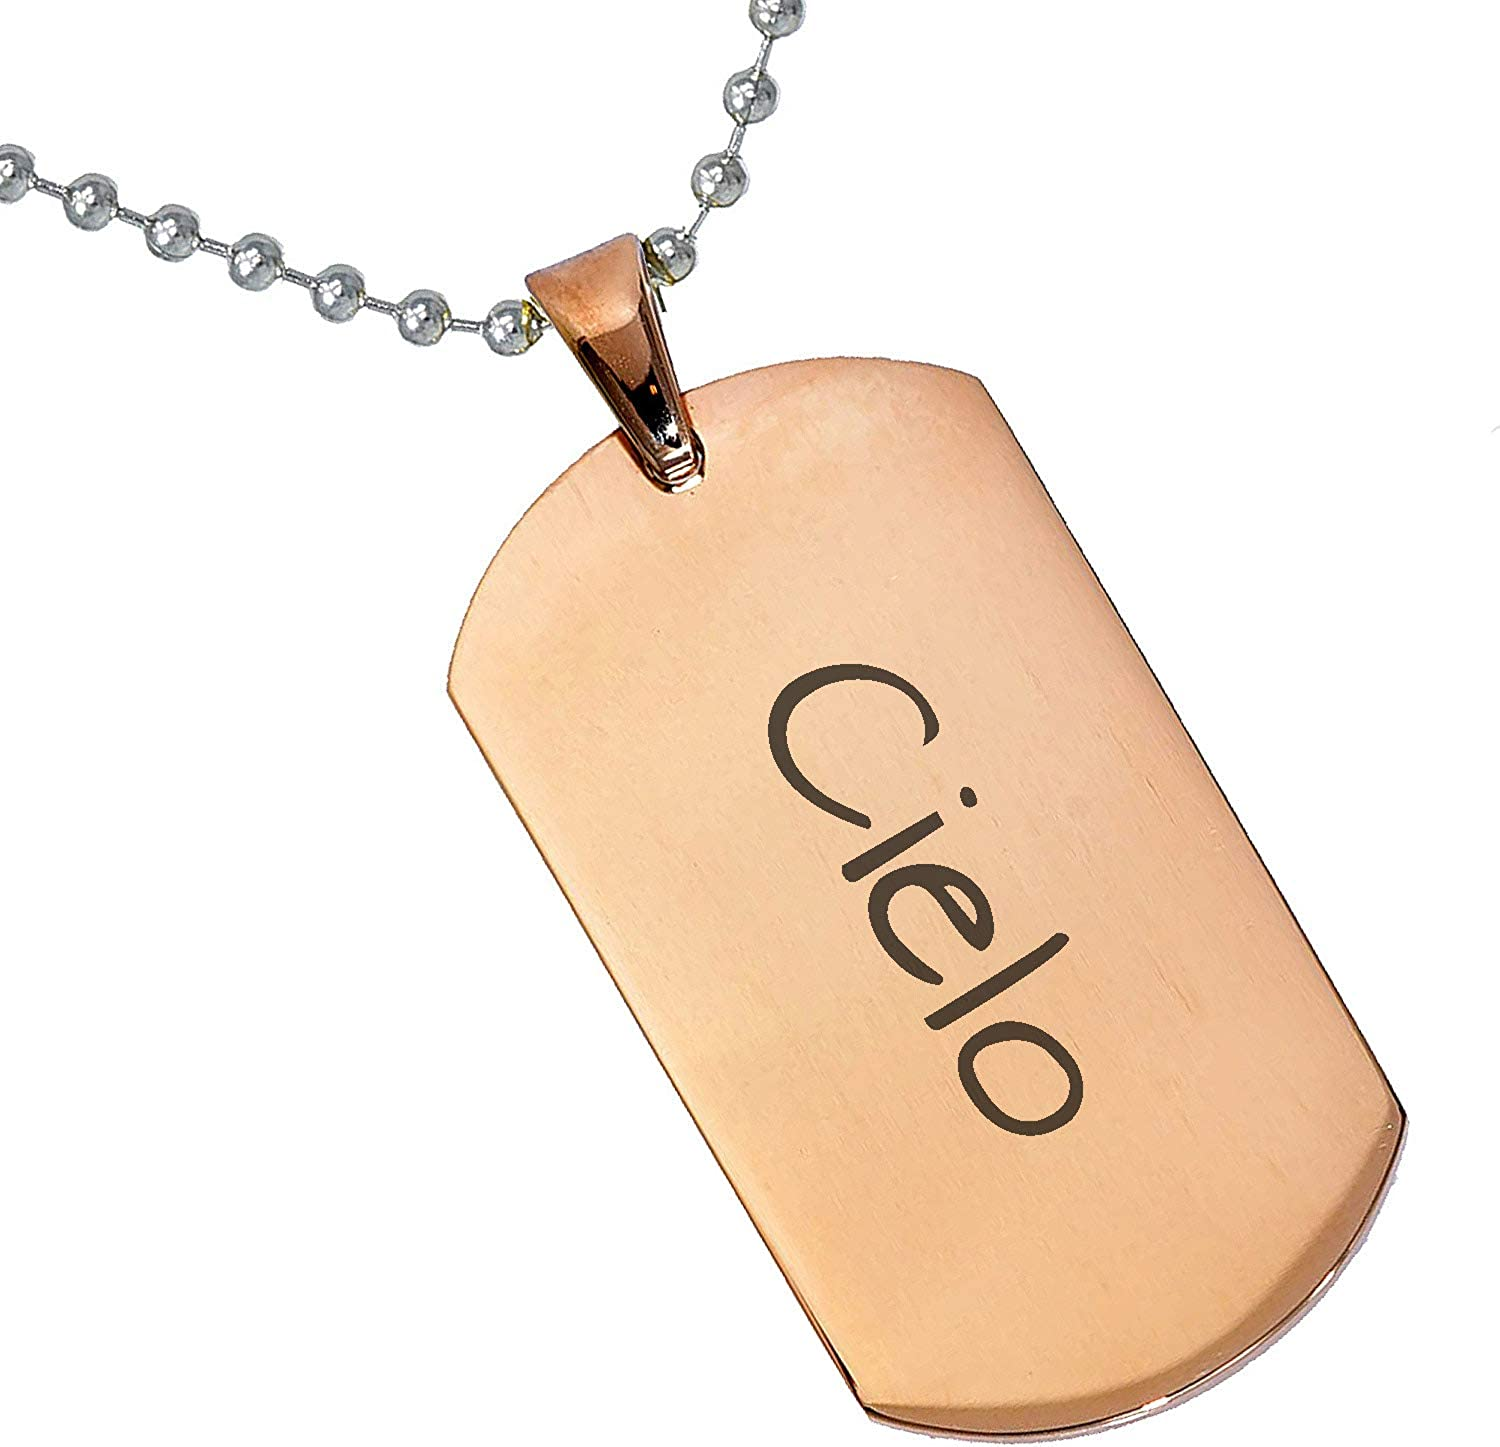 Stainless Steel Silver Gold Black Rose Gold Color Baby Name Cielo Engraved Personalized Gifts For Son Daughter Boyfriend Girlfriend Initial Customizable Pendant Necklace Dog Tags 24 Ball Chain